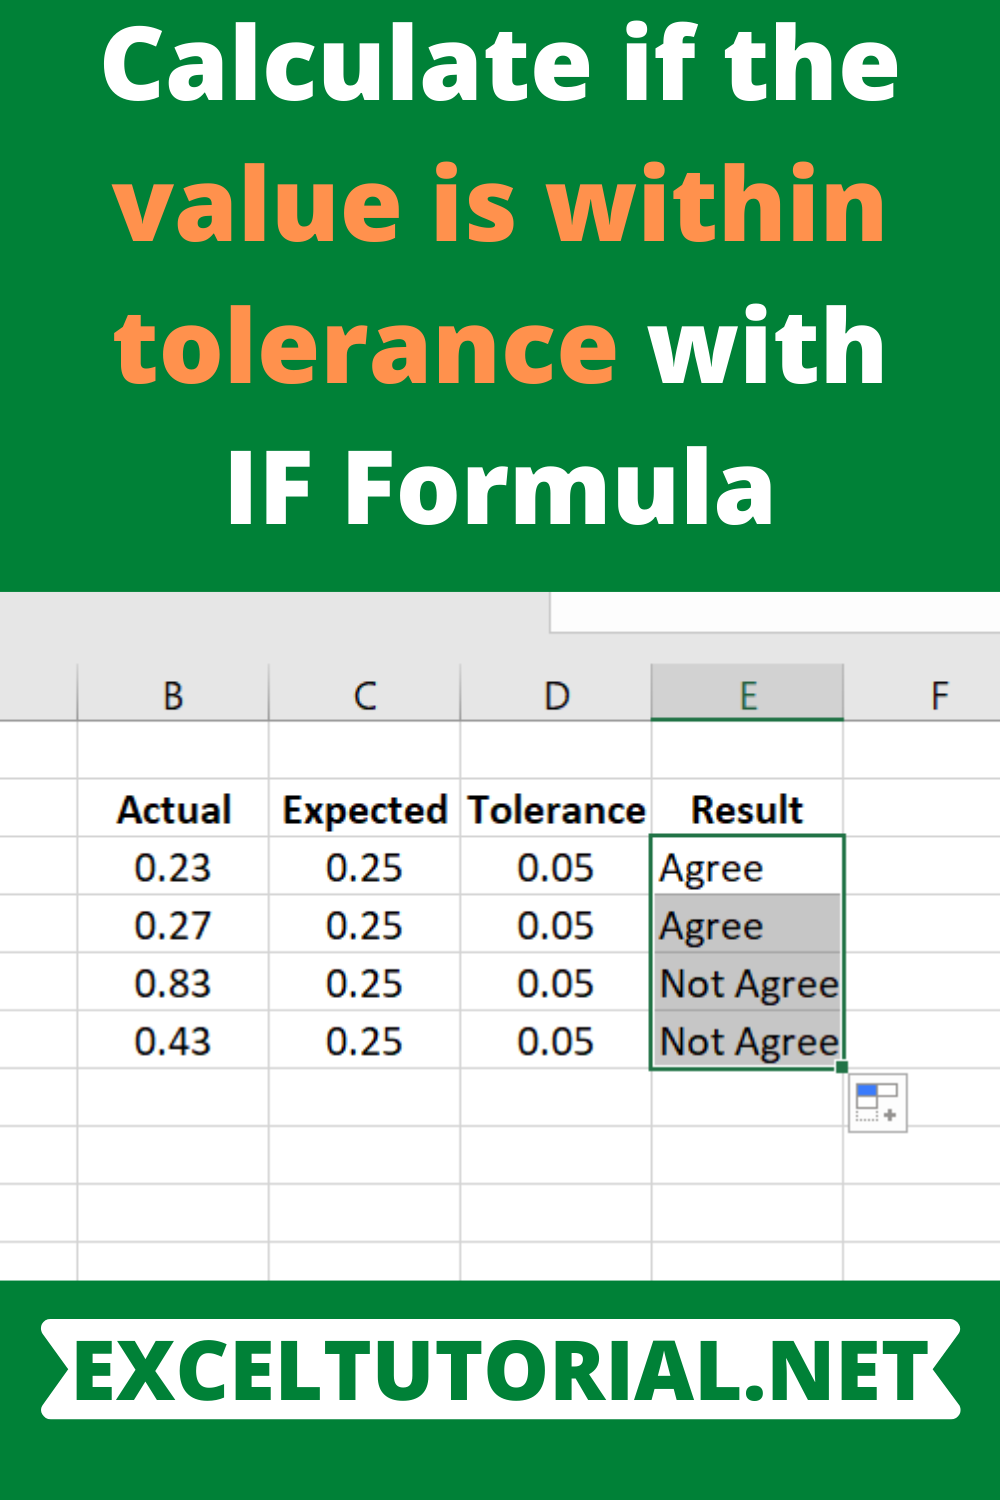 Calculate if the value is within tolerance with IF Formula